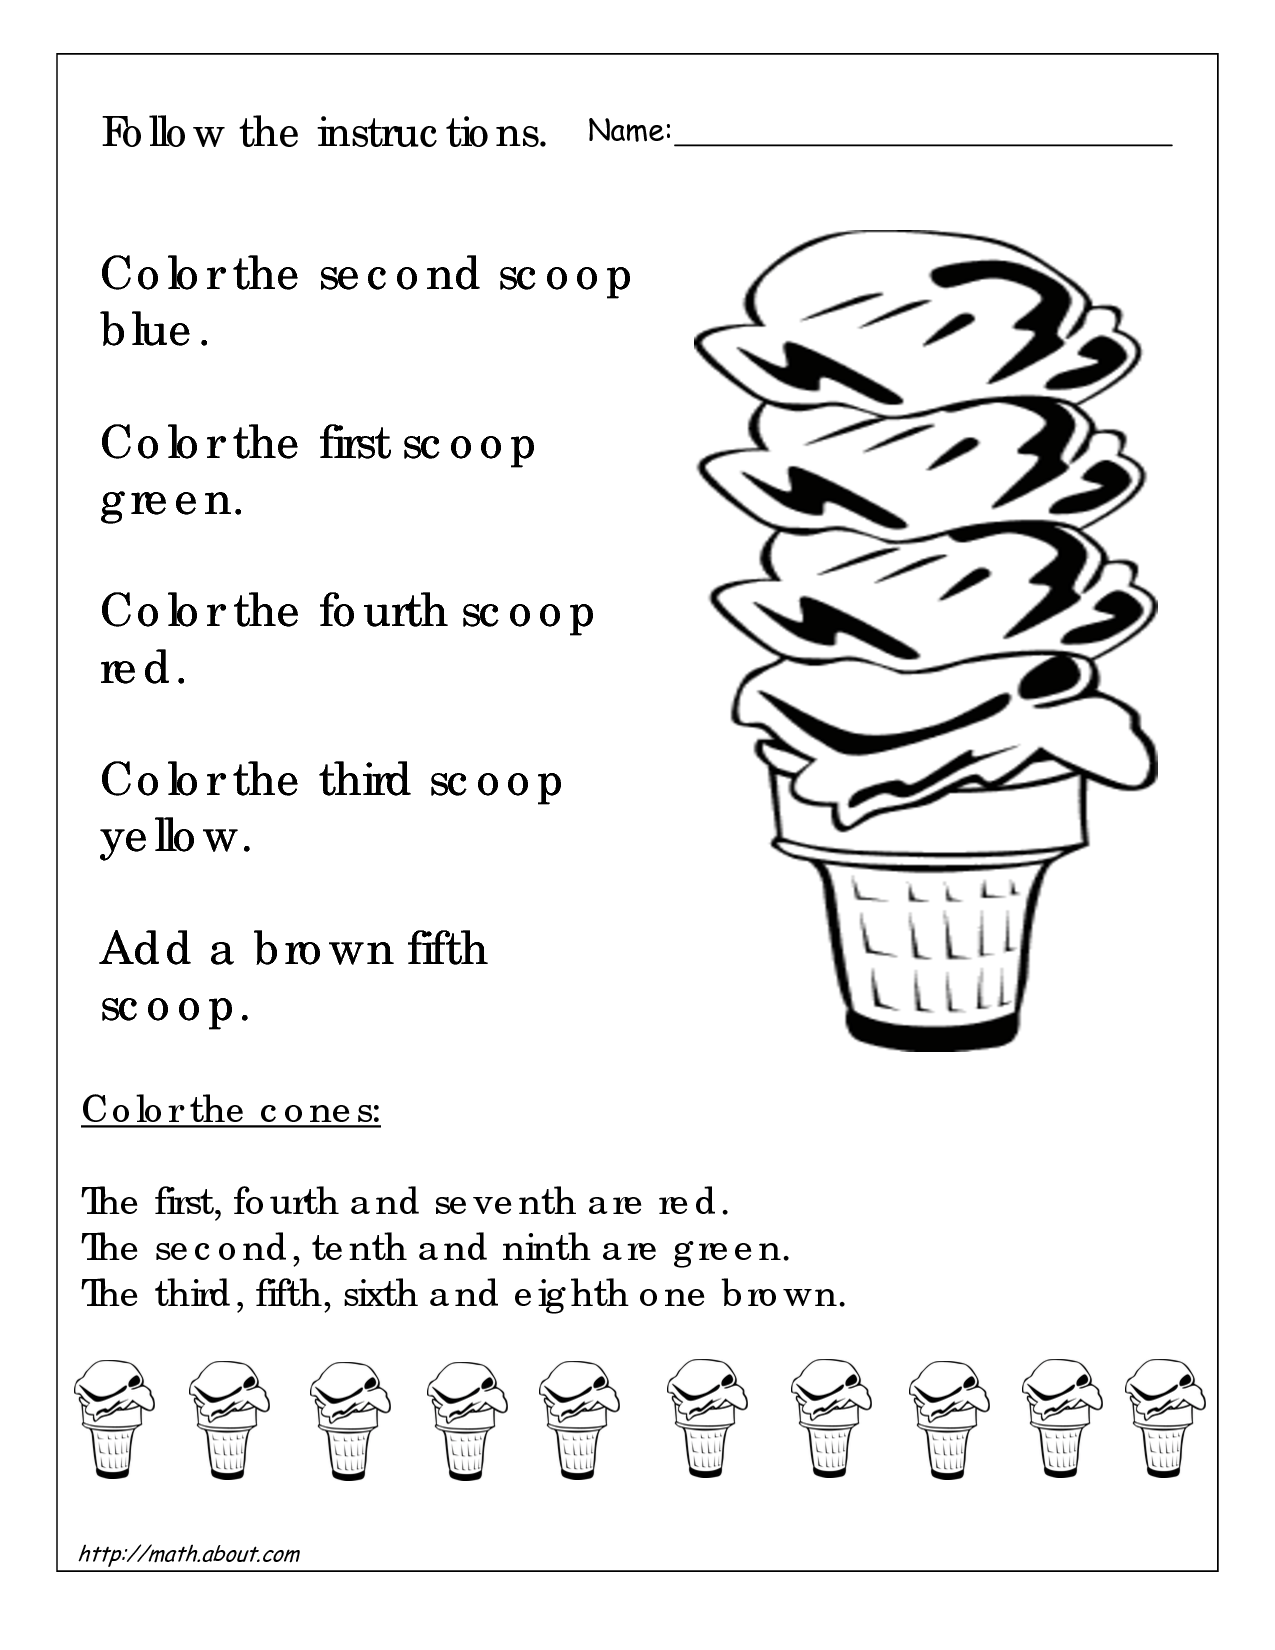 Worksheets Printable Worksheets For 3rd Grade math worksheets for 3rd graders 1st grade printable students